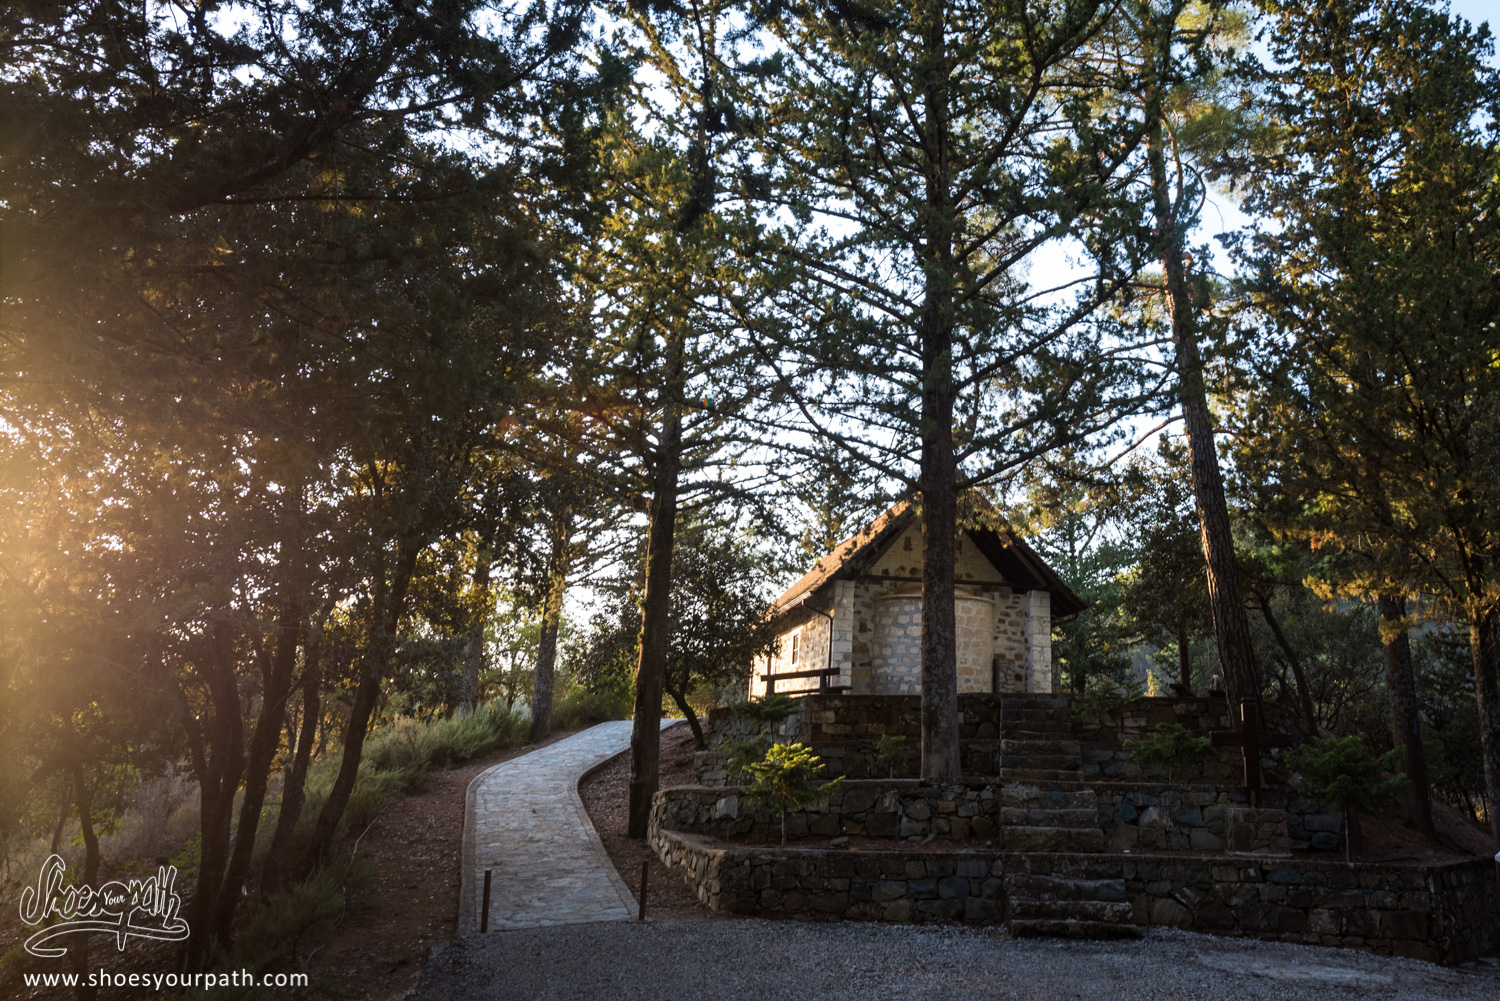 Sunset on the Holy Cross chapel in Stavros Tis Psokas inside the Paphos forest - Cyprus